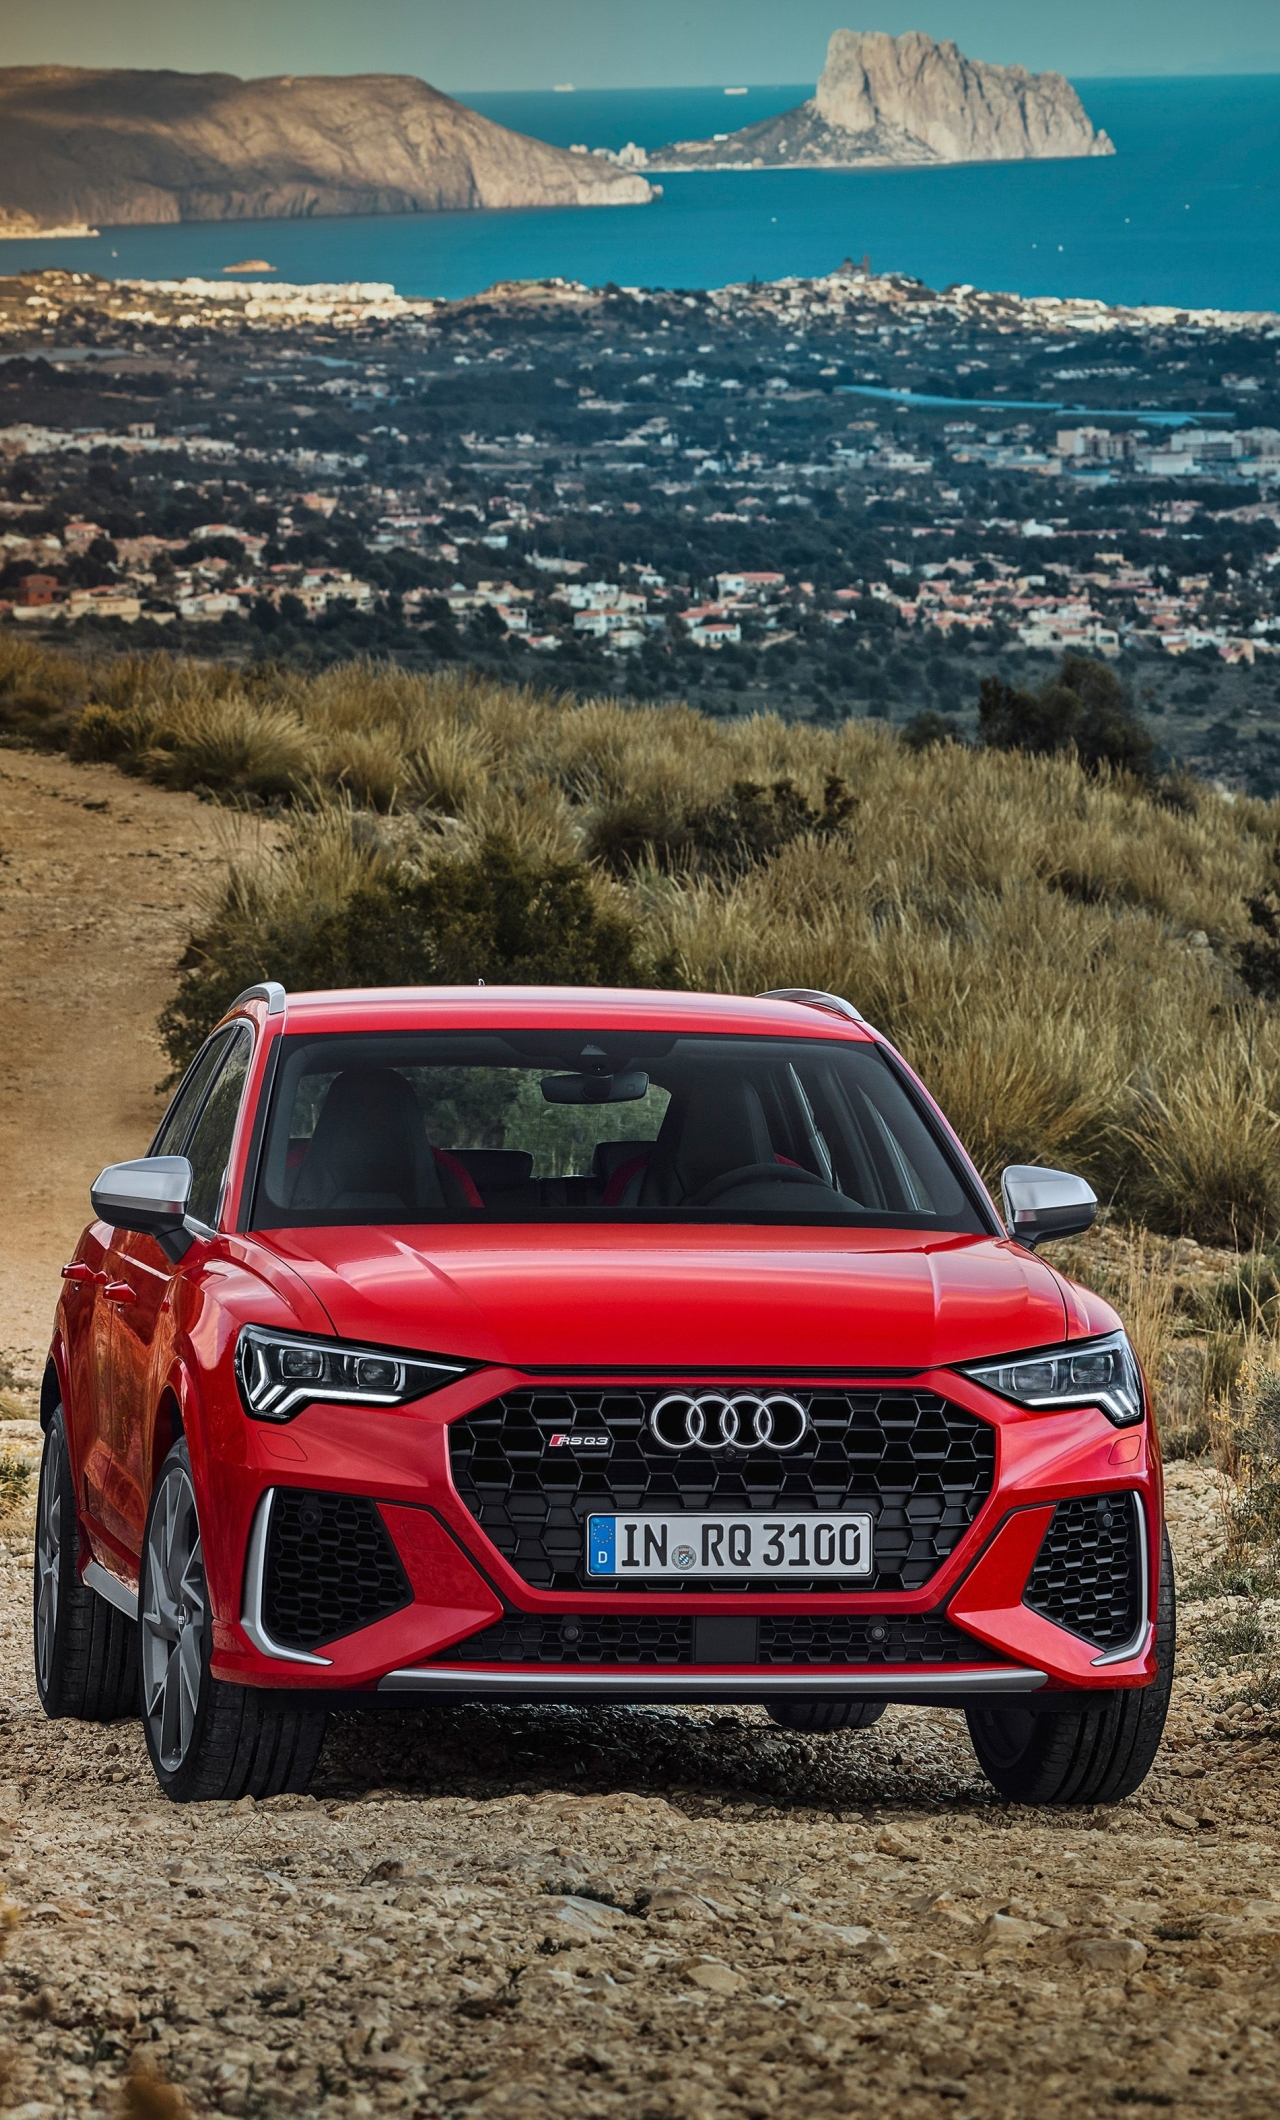 1280x2120 Audi Rs Q3 Iphone 6 Plus Wallpaper Hd Cars 4k Wallpapers Images Photos And Background